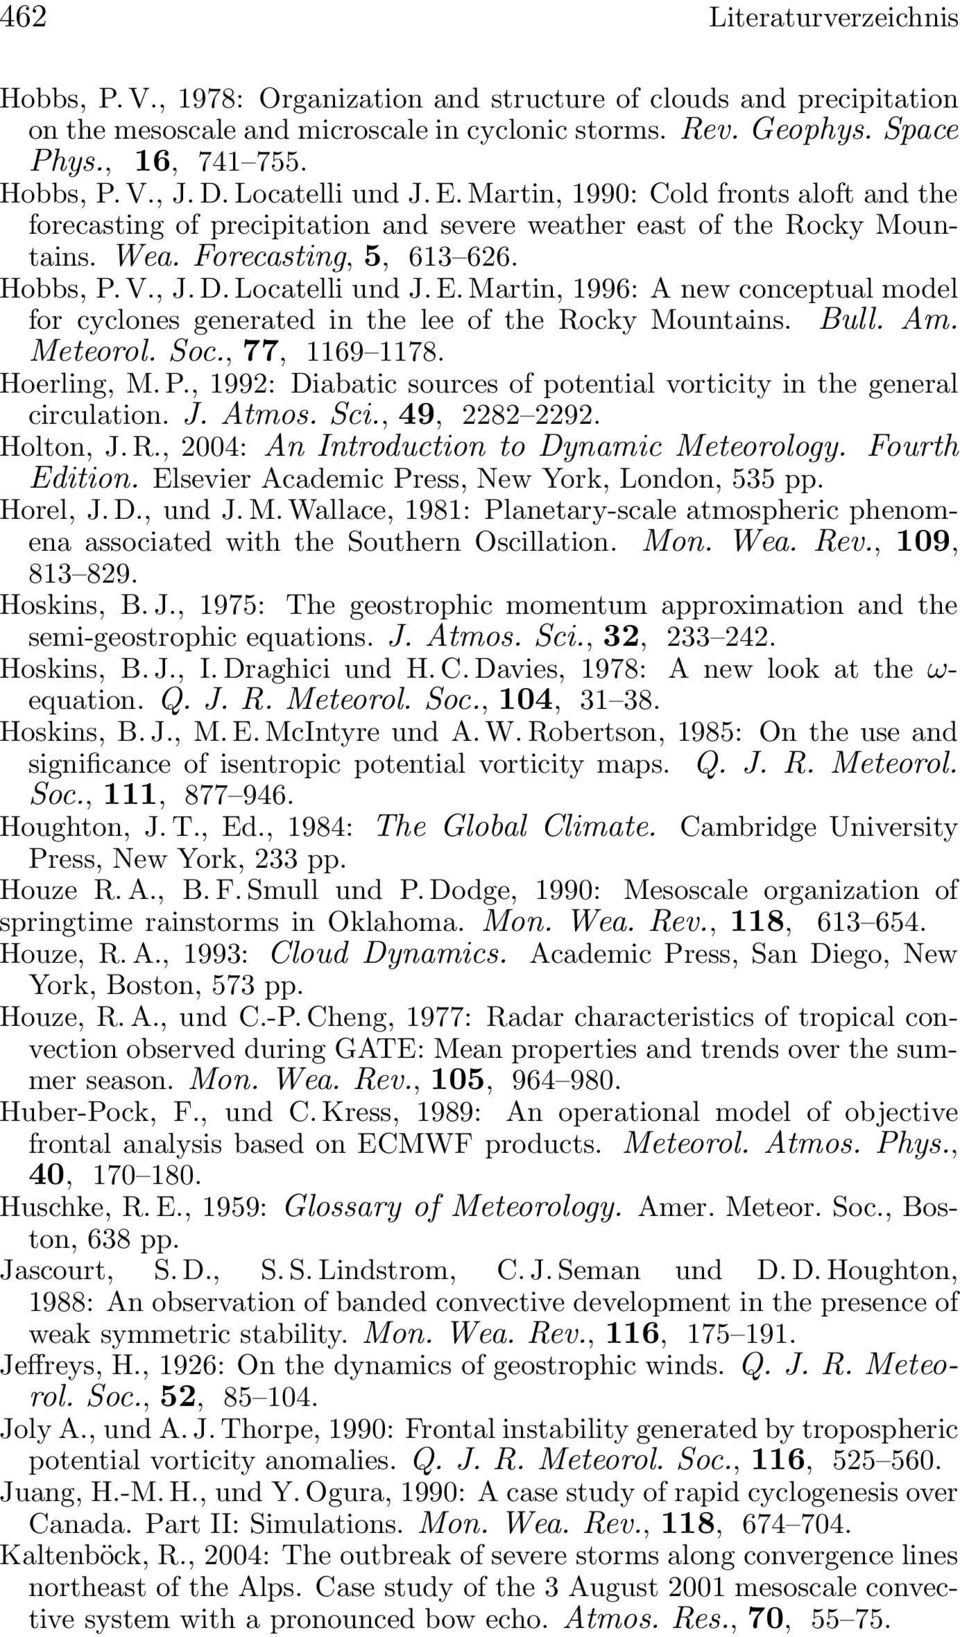 Bull. Am. Meteorol. Soc., 77, 1169 1178. Hoerling, M. P., 1992: Diabatic sources of potential vorticity in the general circulation. J. Atmos. Sci., 49, 2282 2292. Holton, J. R.